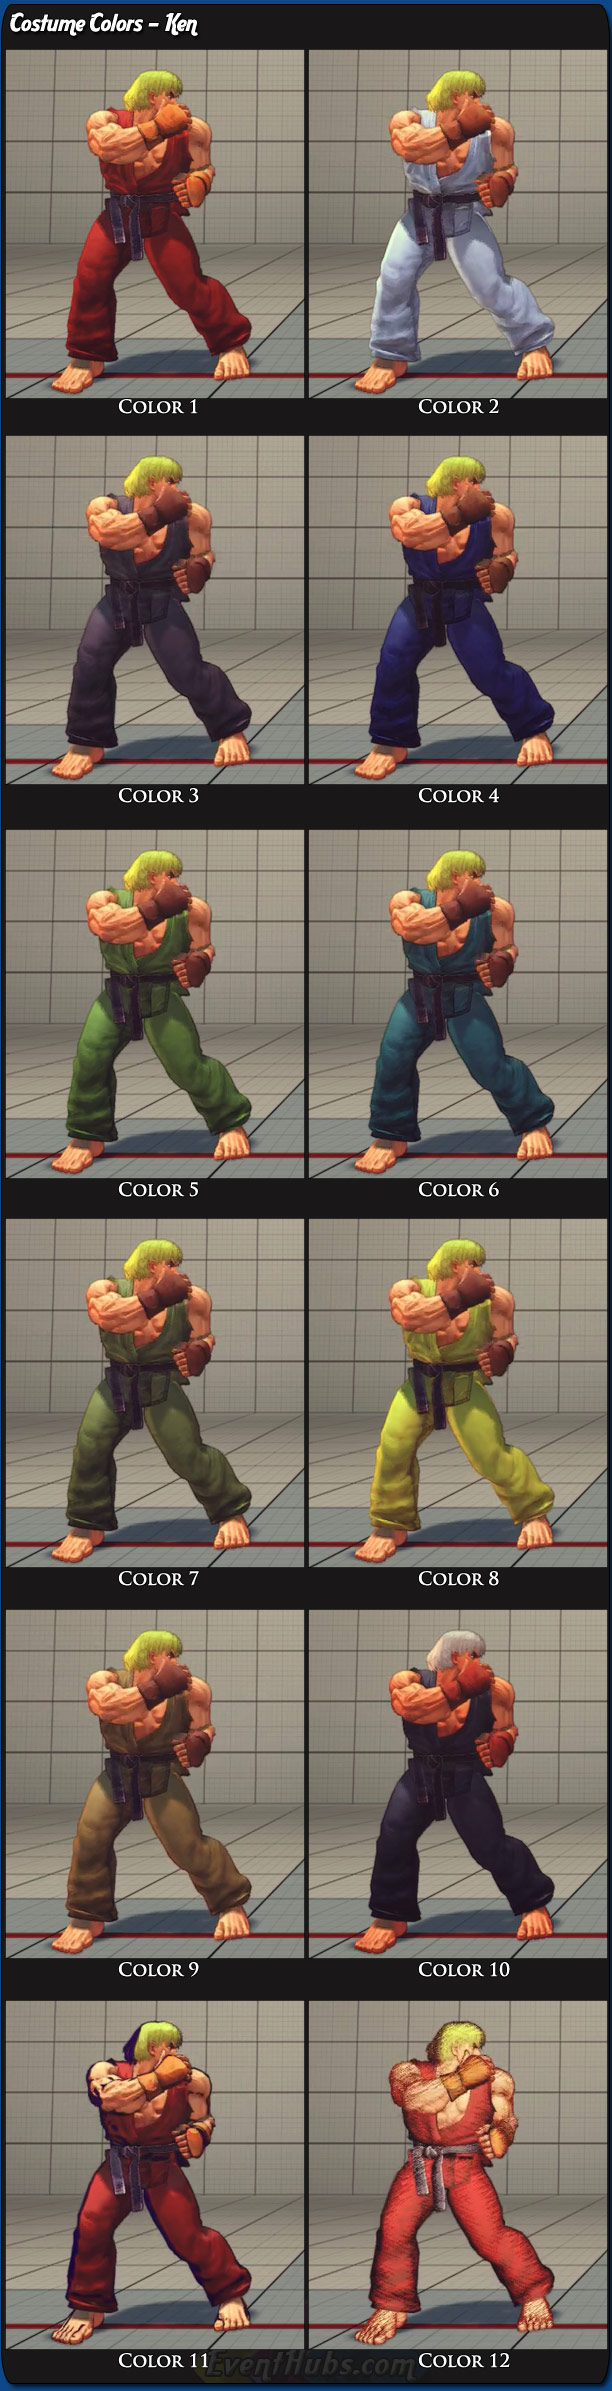 Ken's main costume colors for Super Street Fighter 4